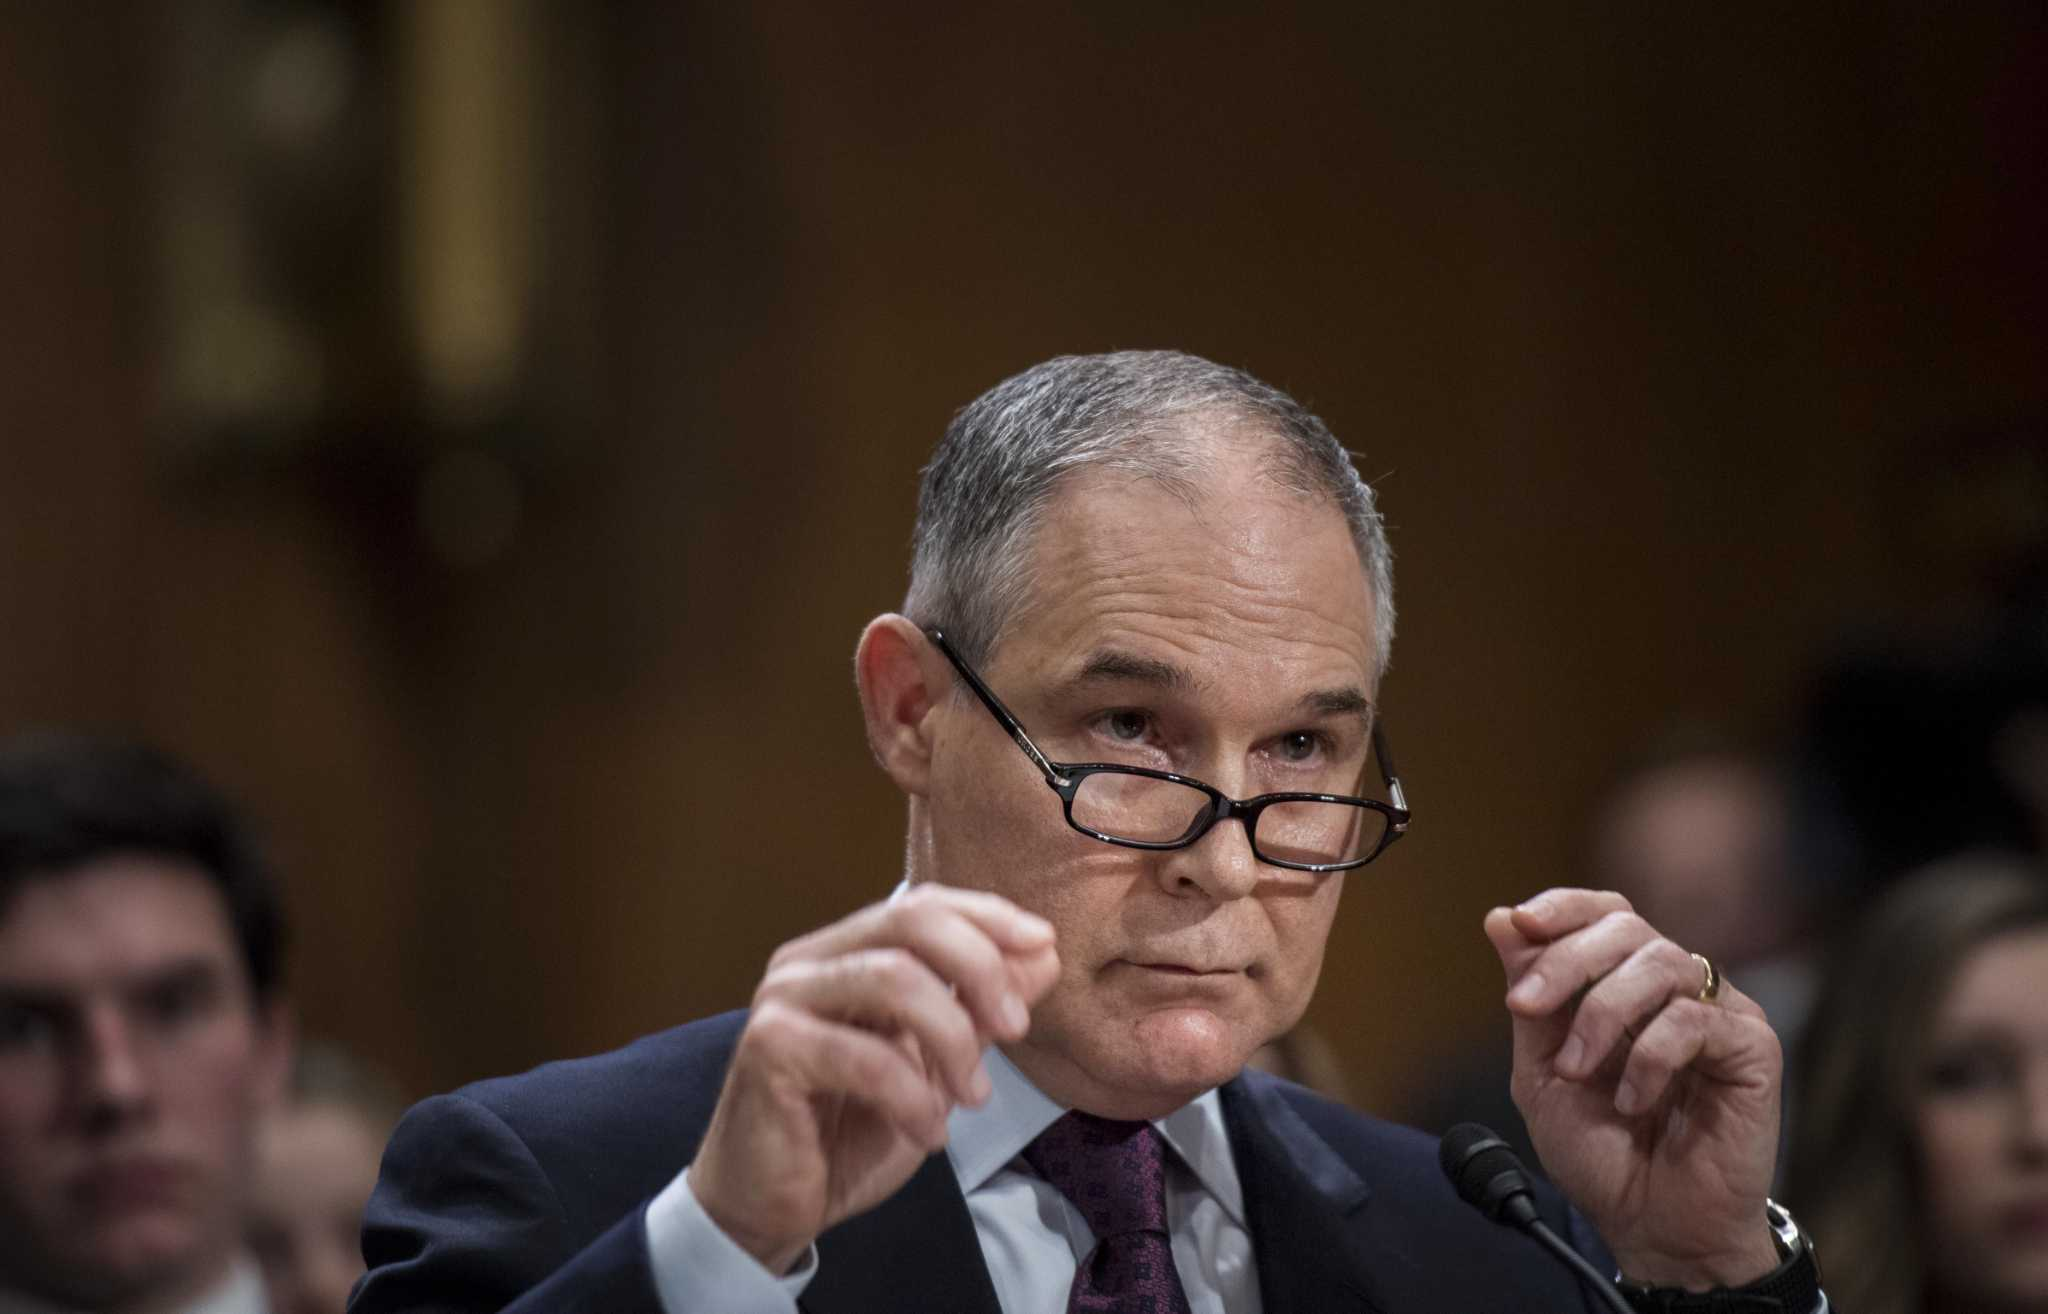 Epa Pushes Ahead With Effort To Restrict The Science It